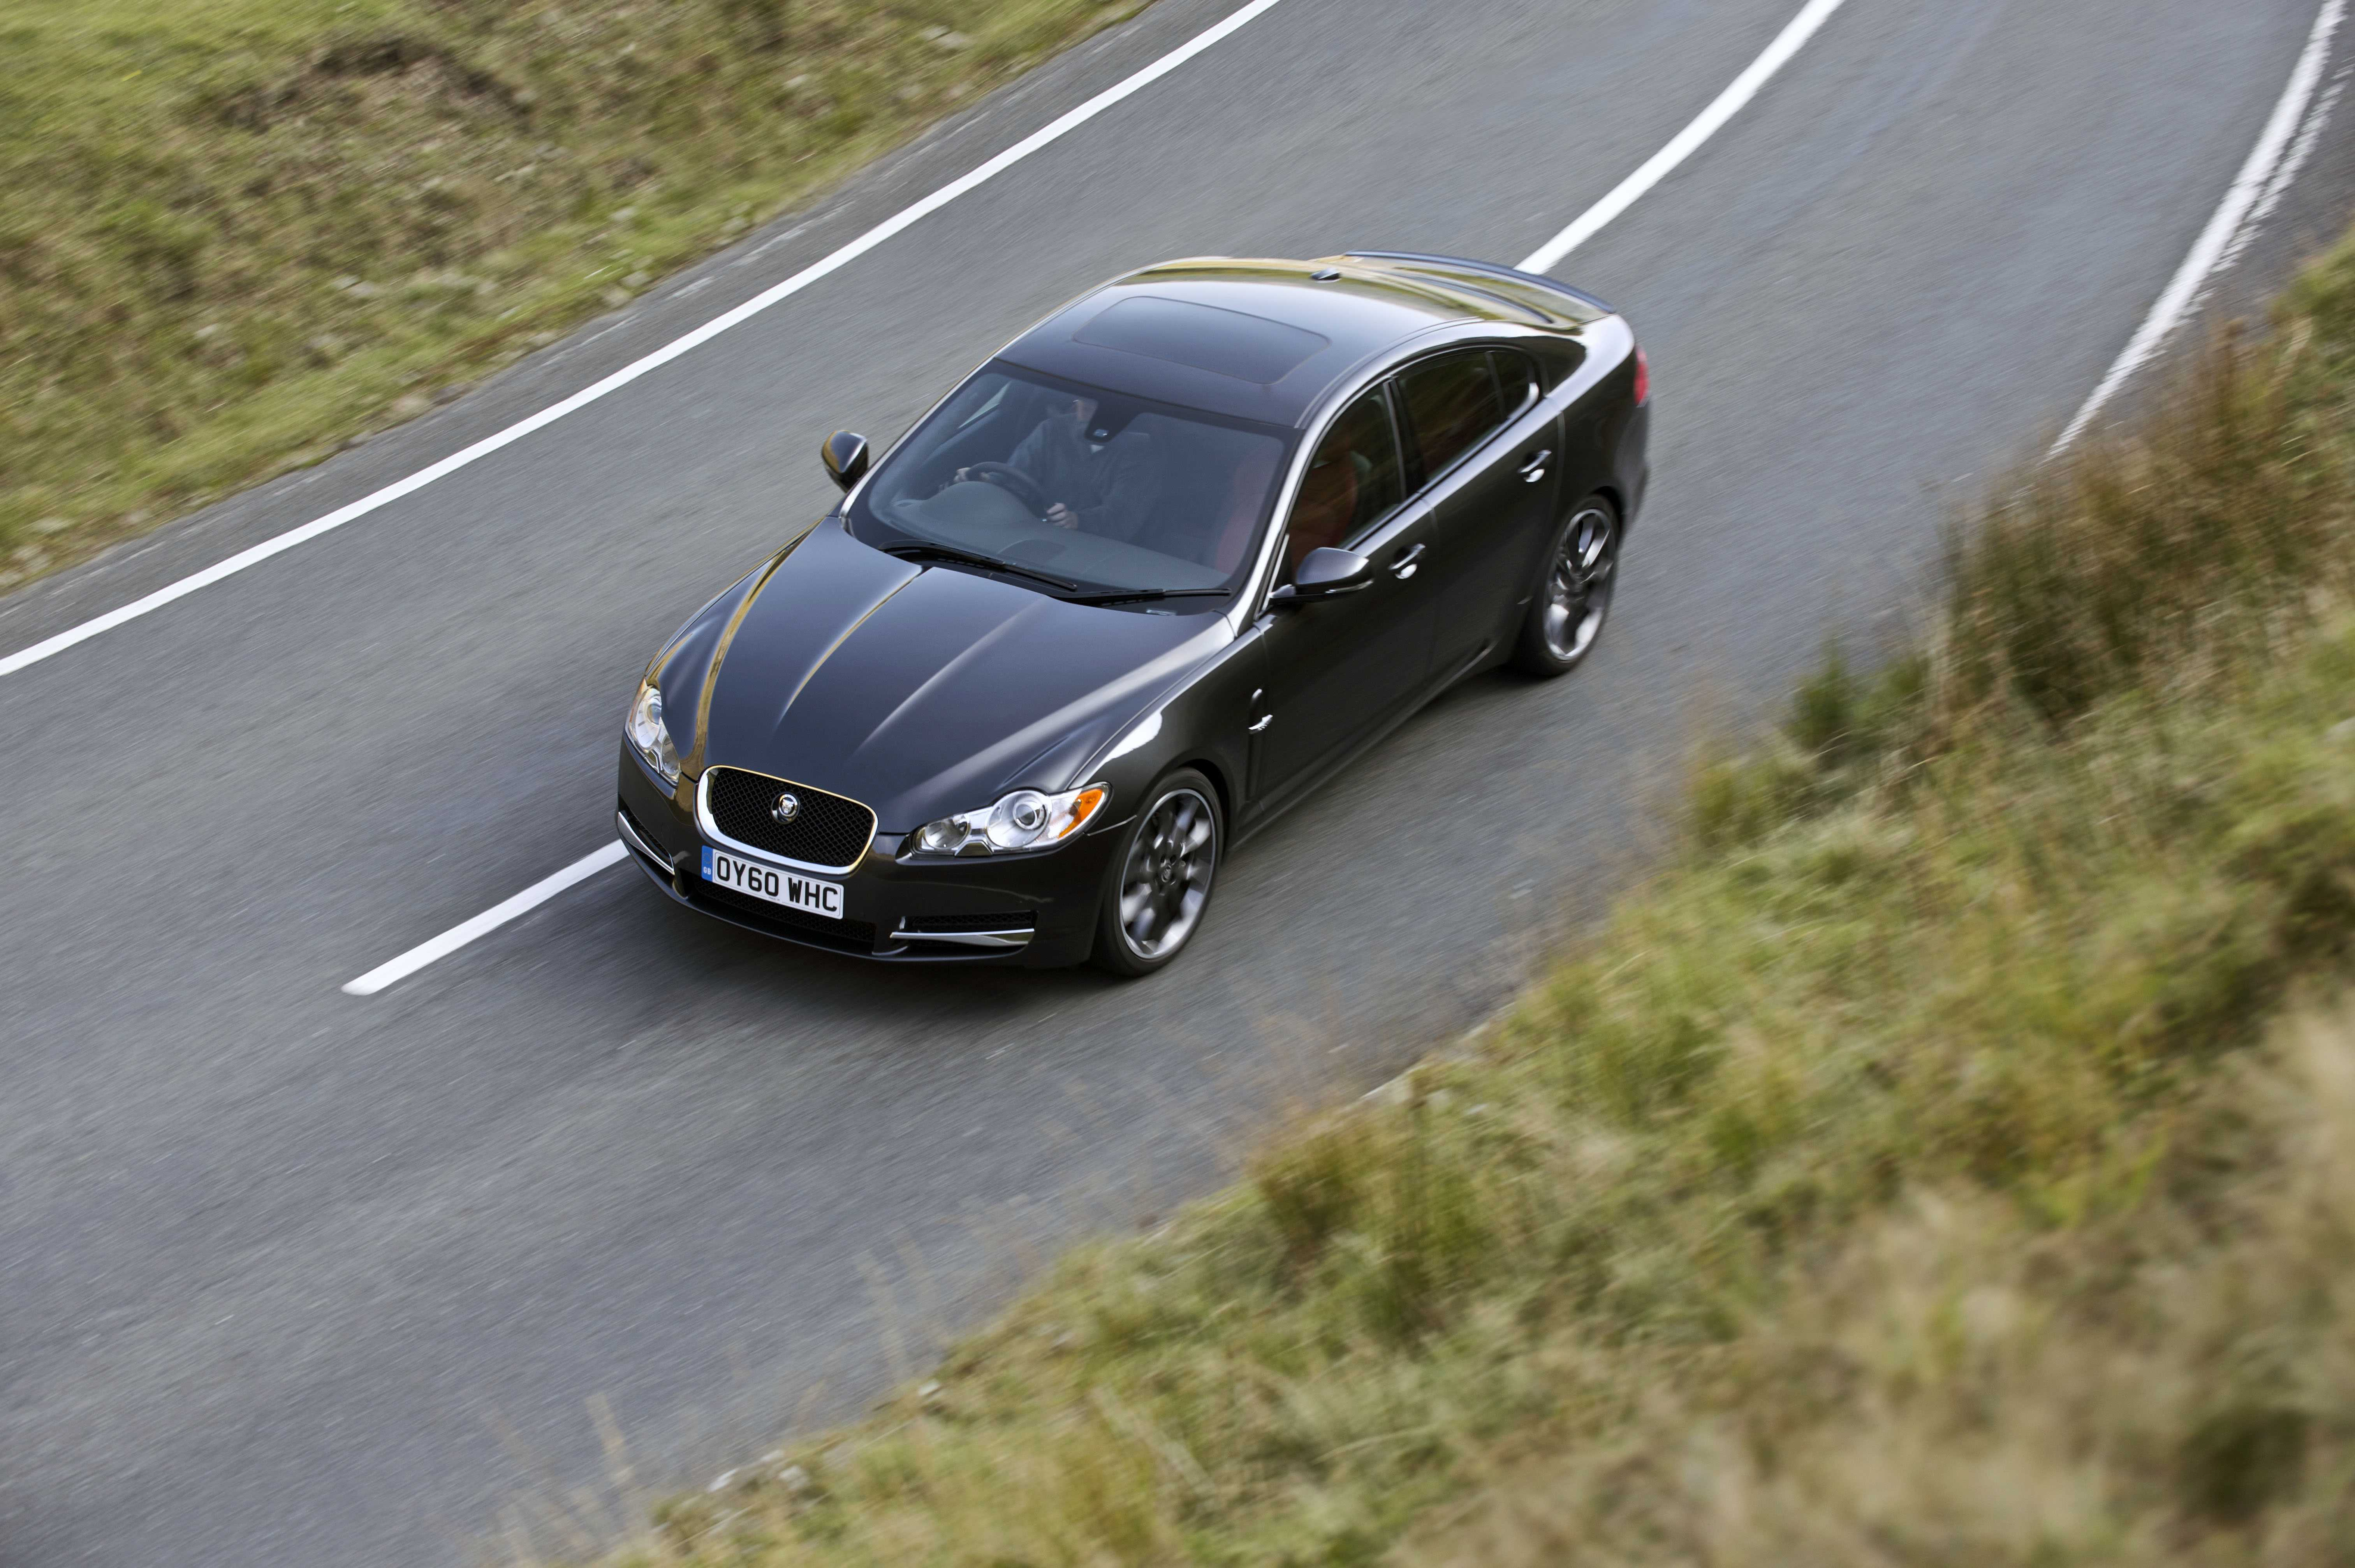 jaguar img forums forum sale used supercharged xfr enthusiasts xf for